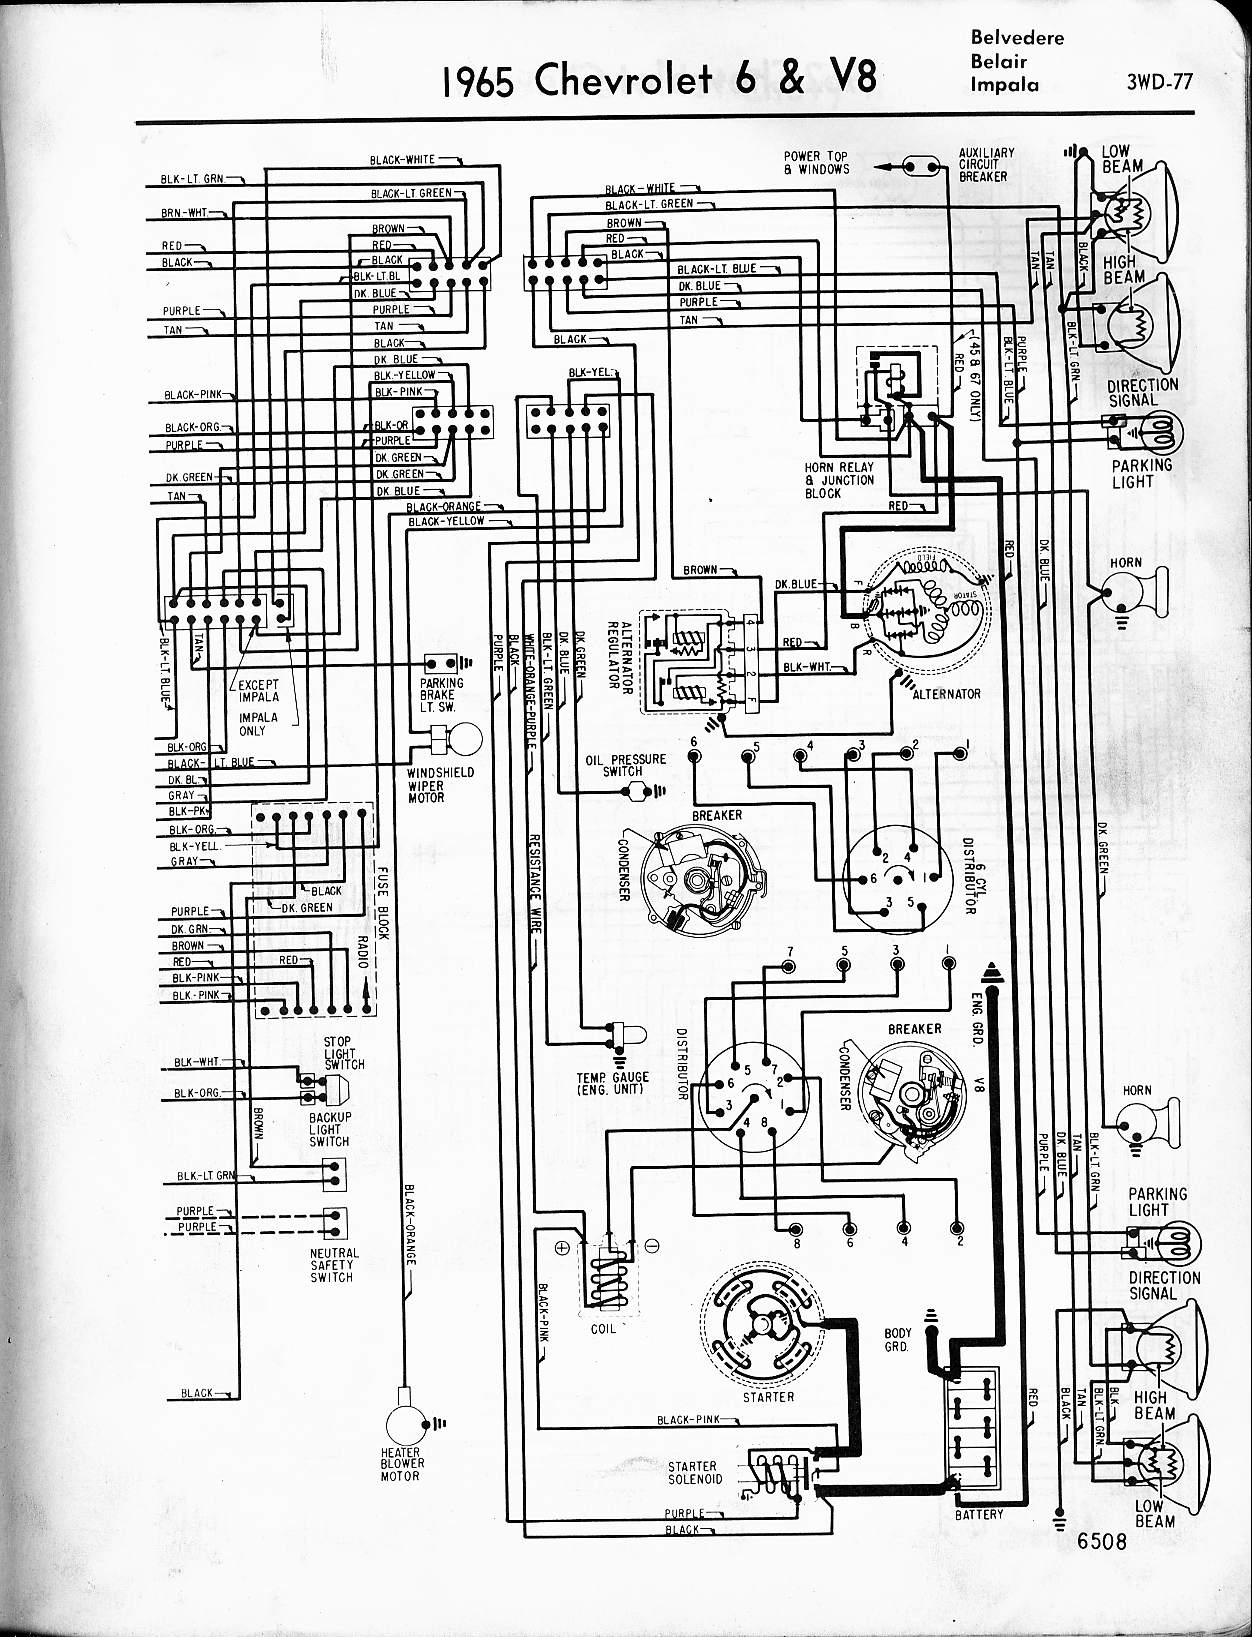 Headlight Wiring Harness Diagram Blog About Diagrams Schematic Chevy Harley